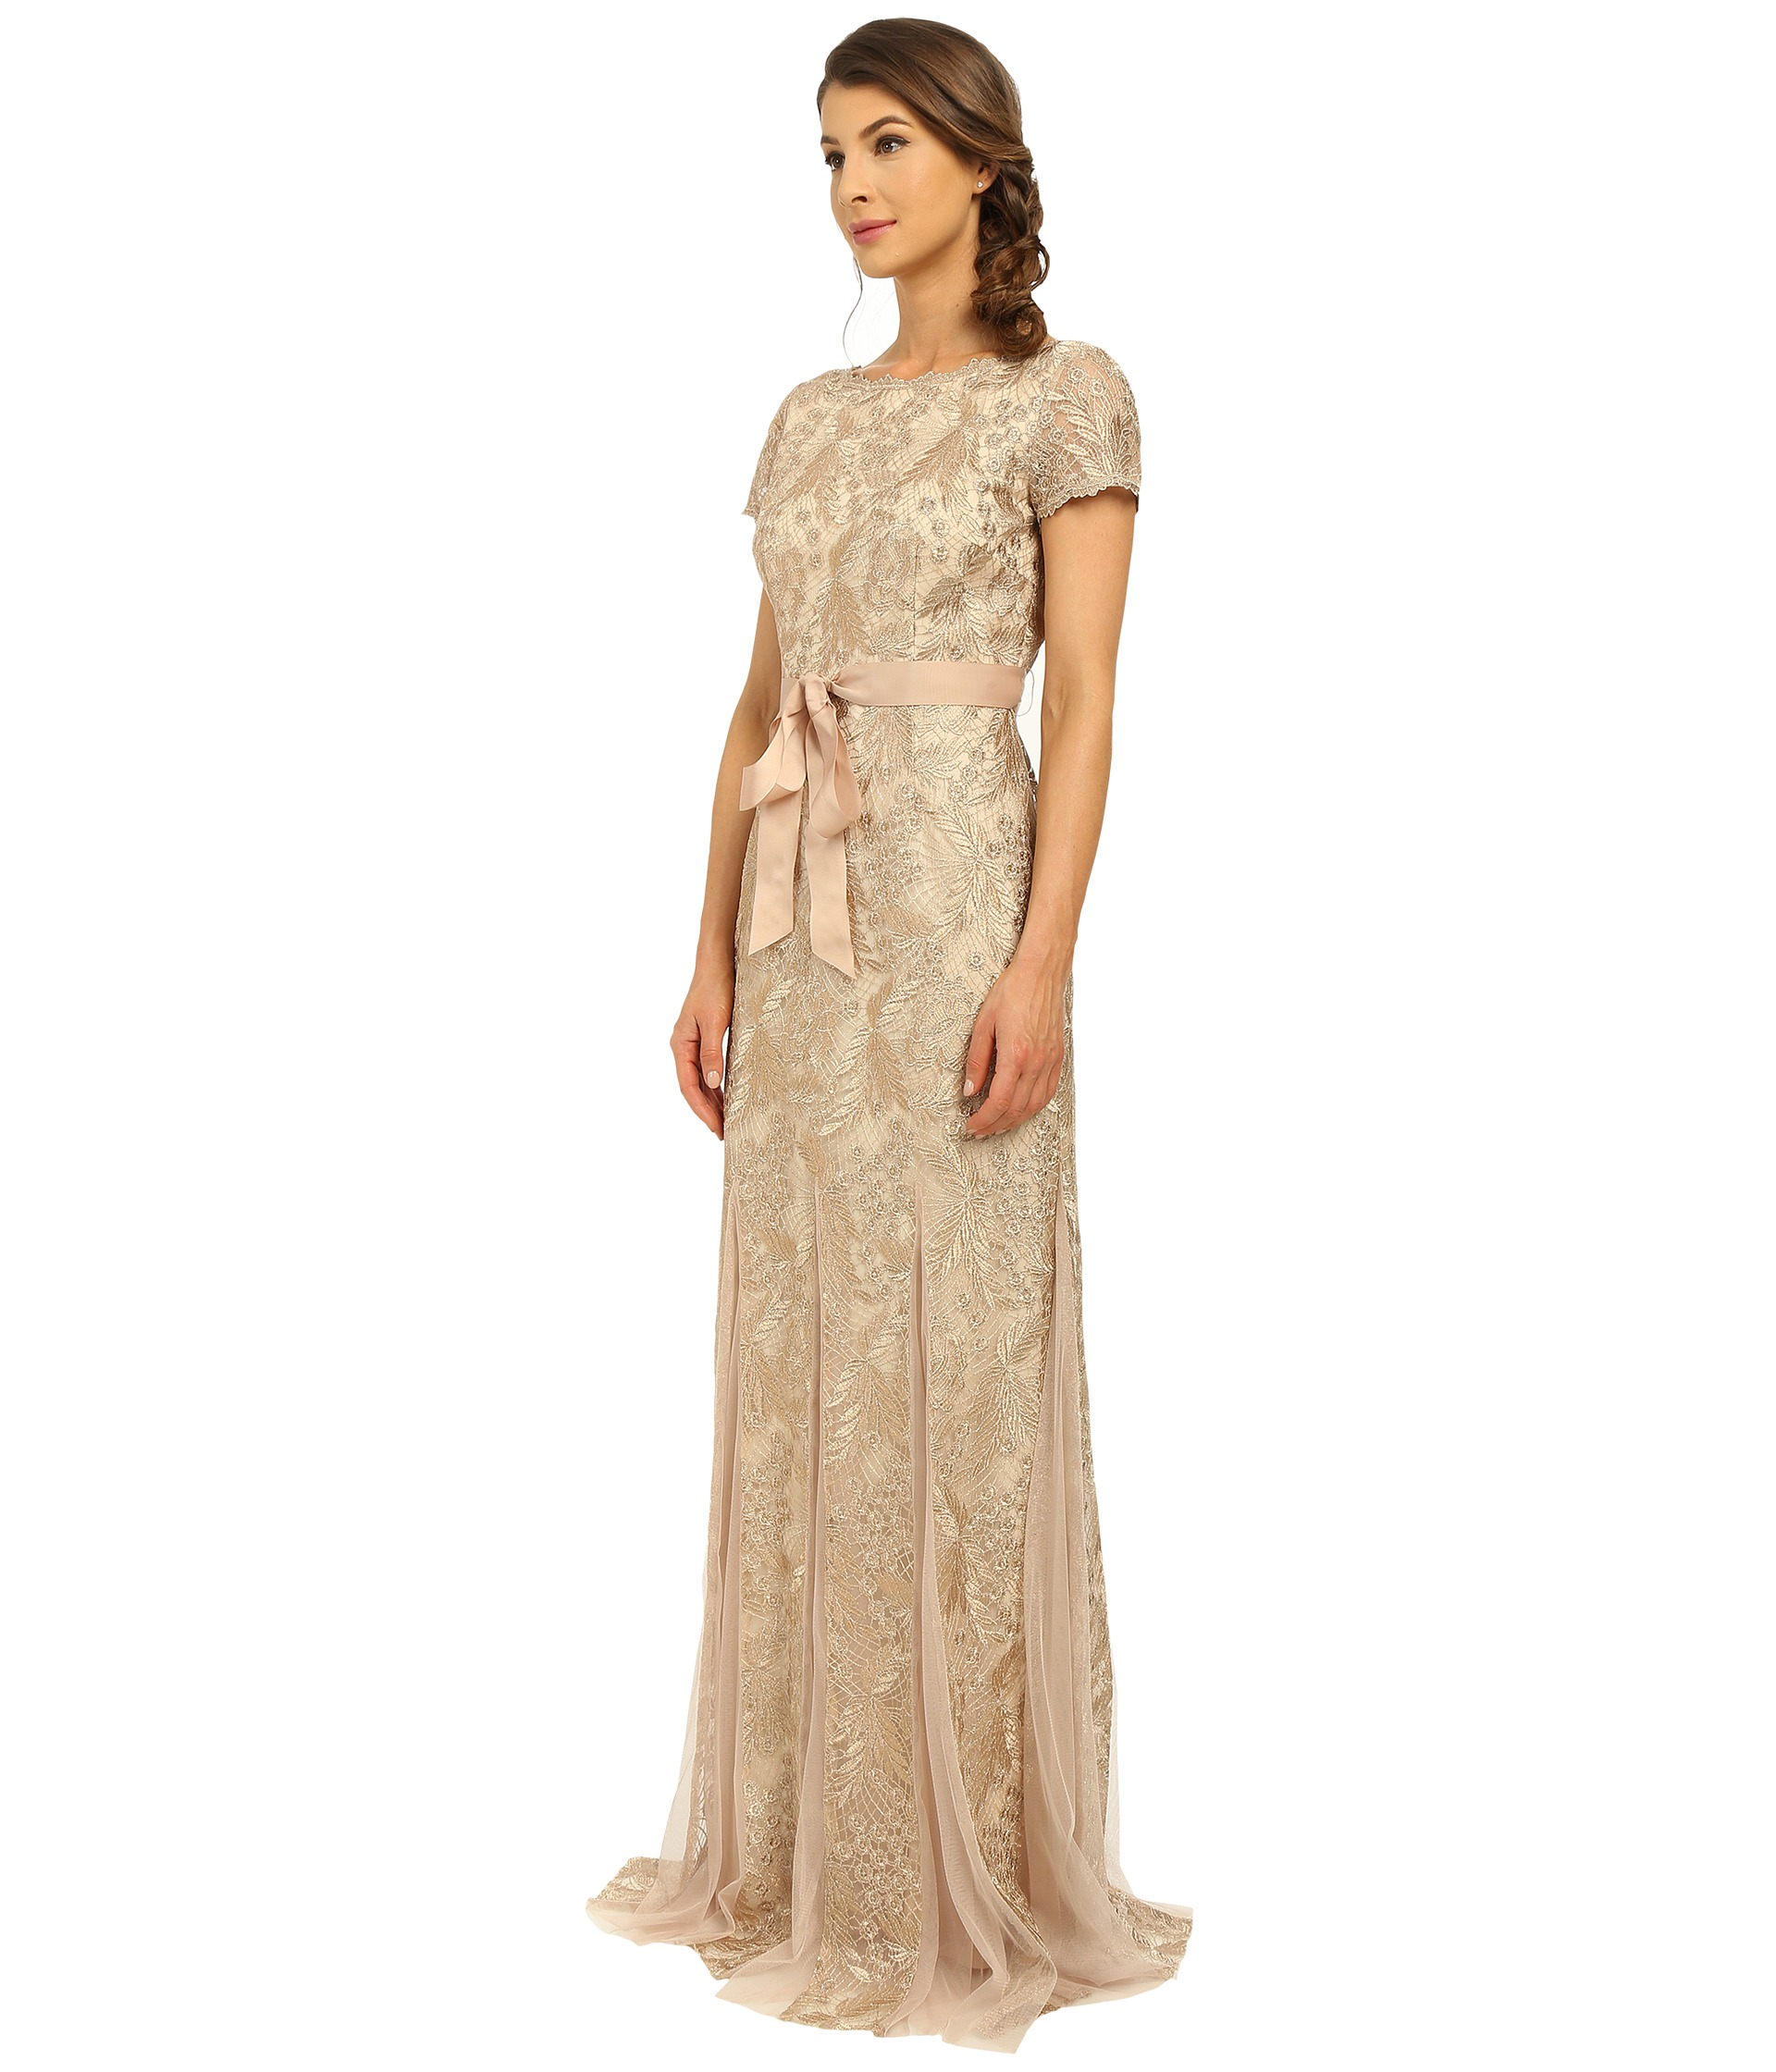 Lyst - Adrianna Papell Metallic Embellished Gown With Godets in Brown